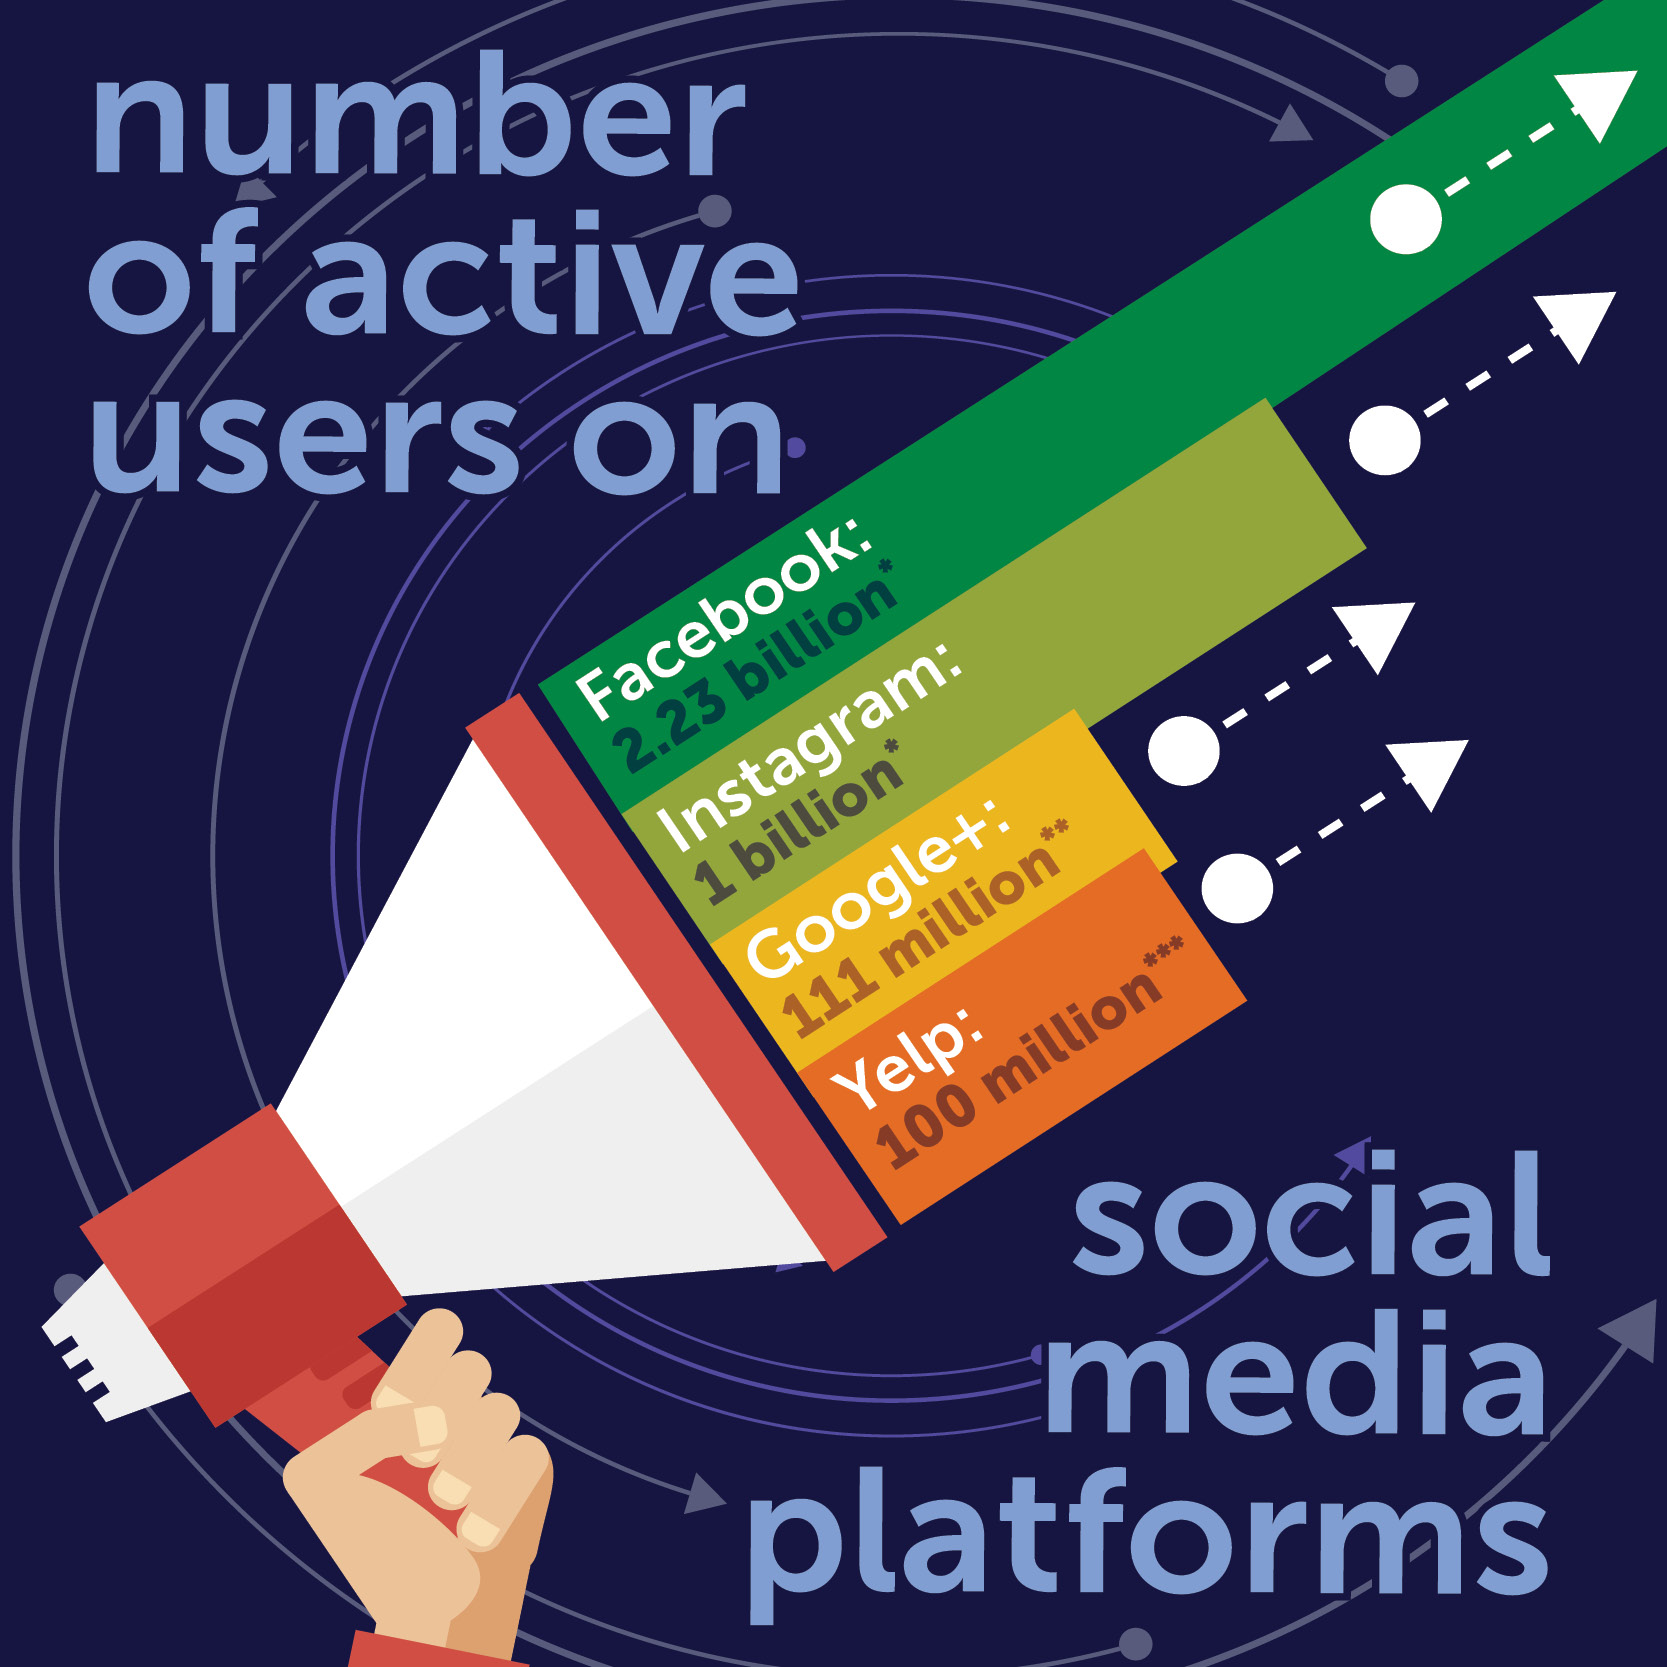 Number Active Users On Social Media Platforms